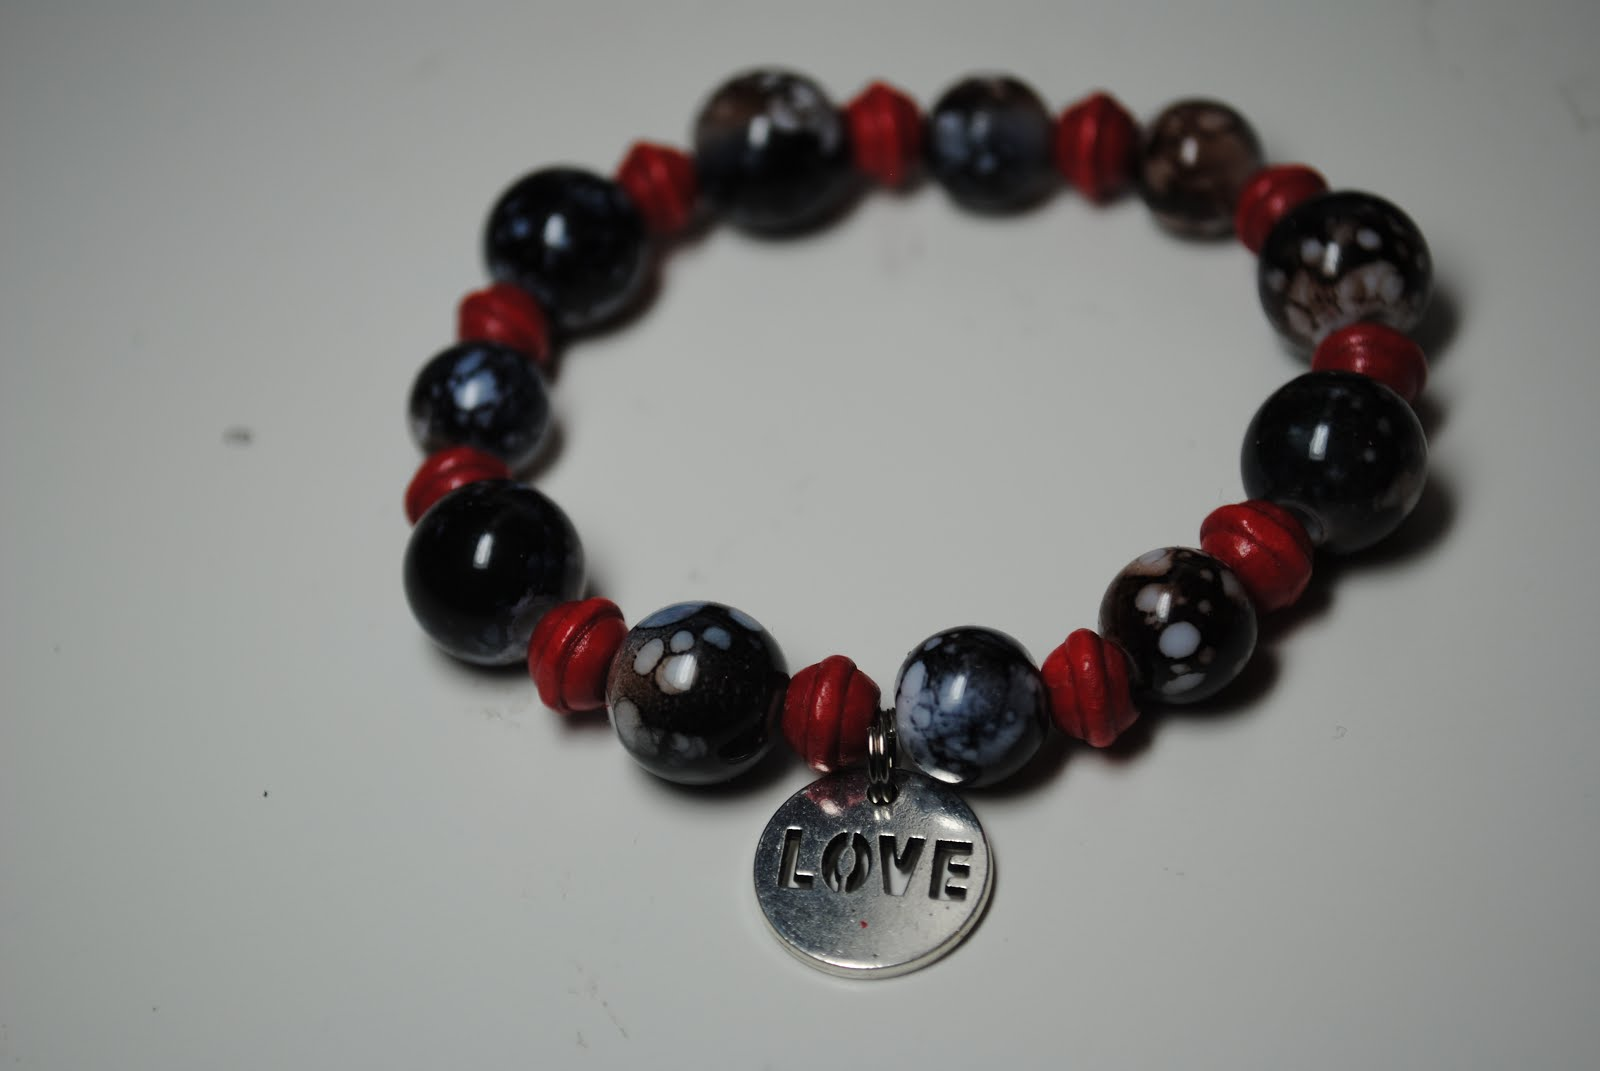 Around the World Bracelet with Love Charm - Black/Red $12